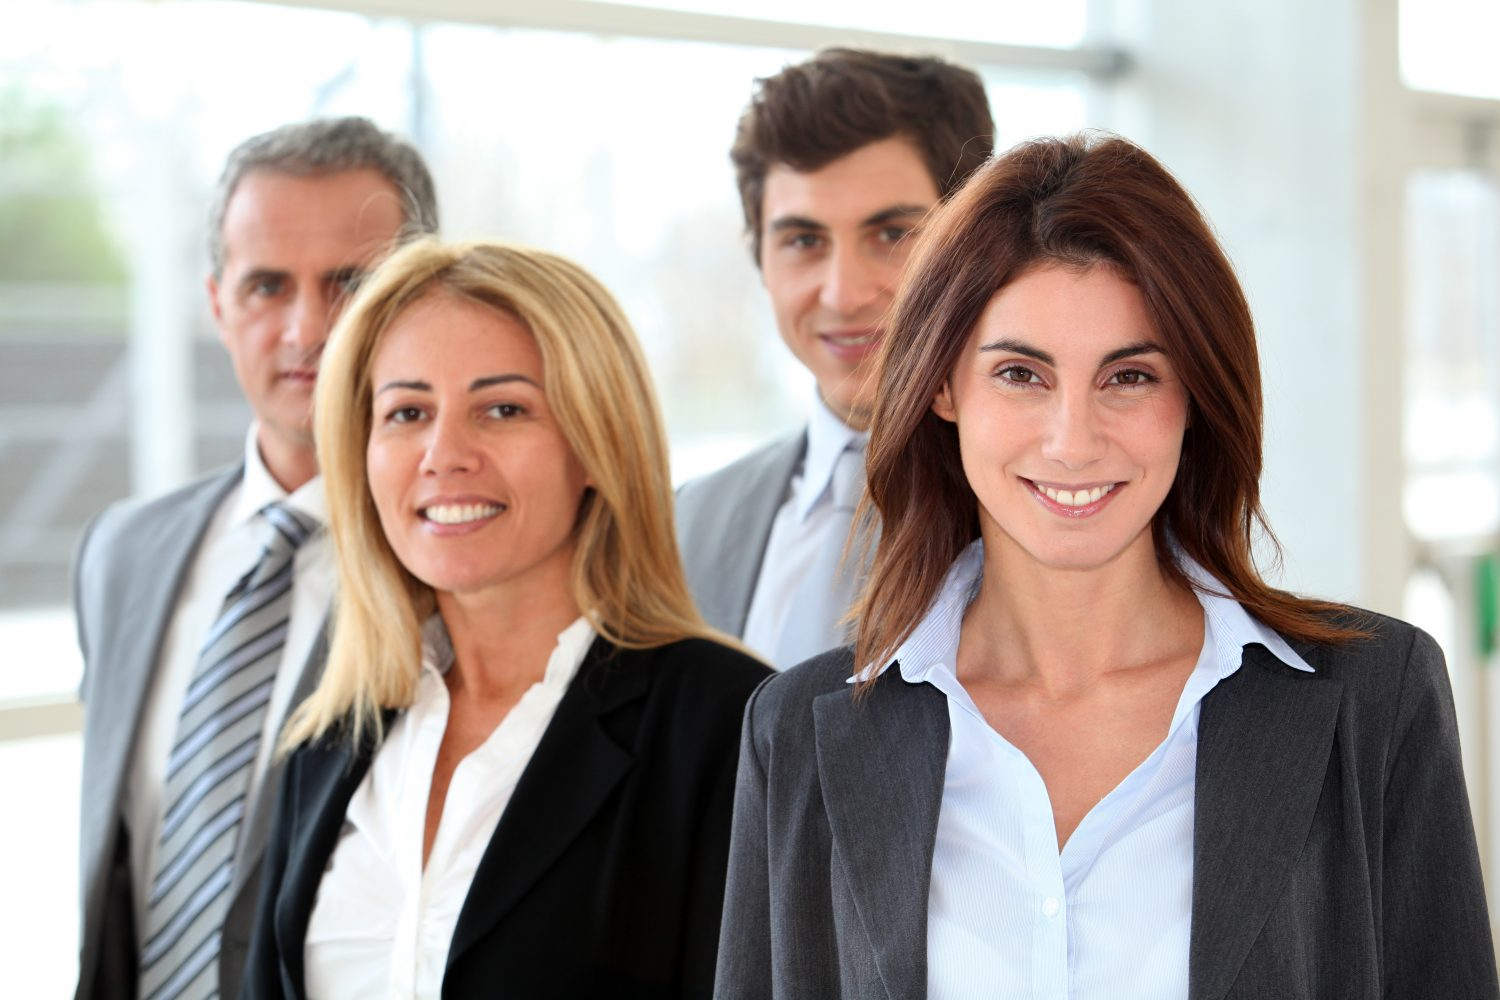 Small group of smiling business people